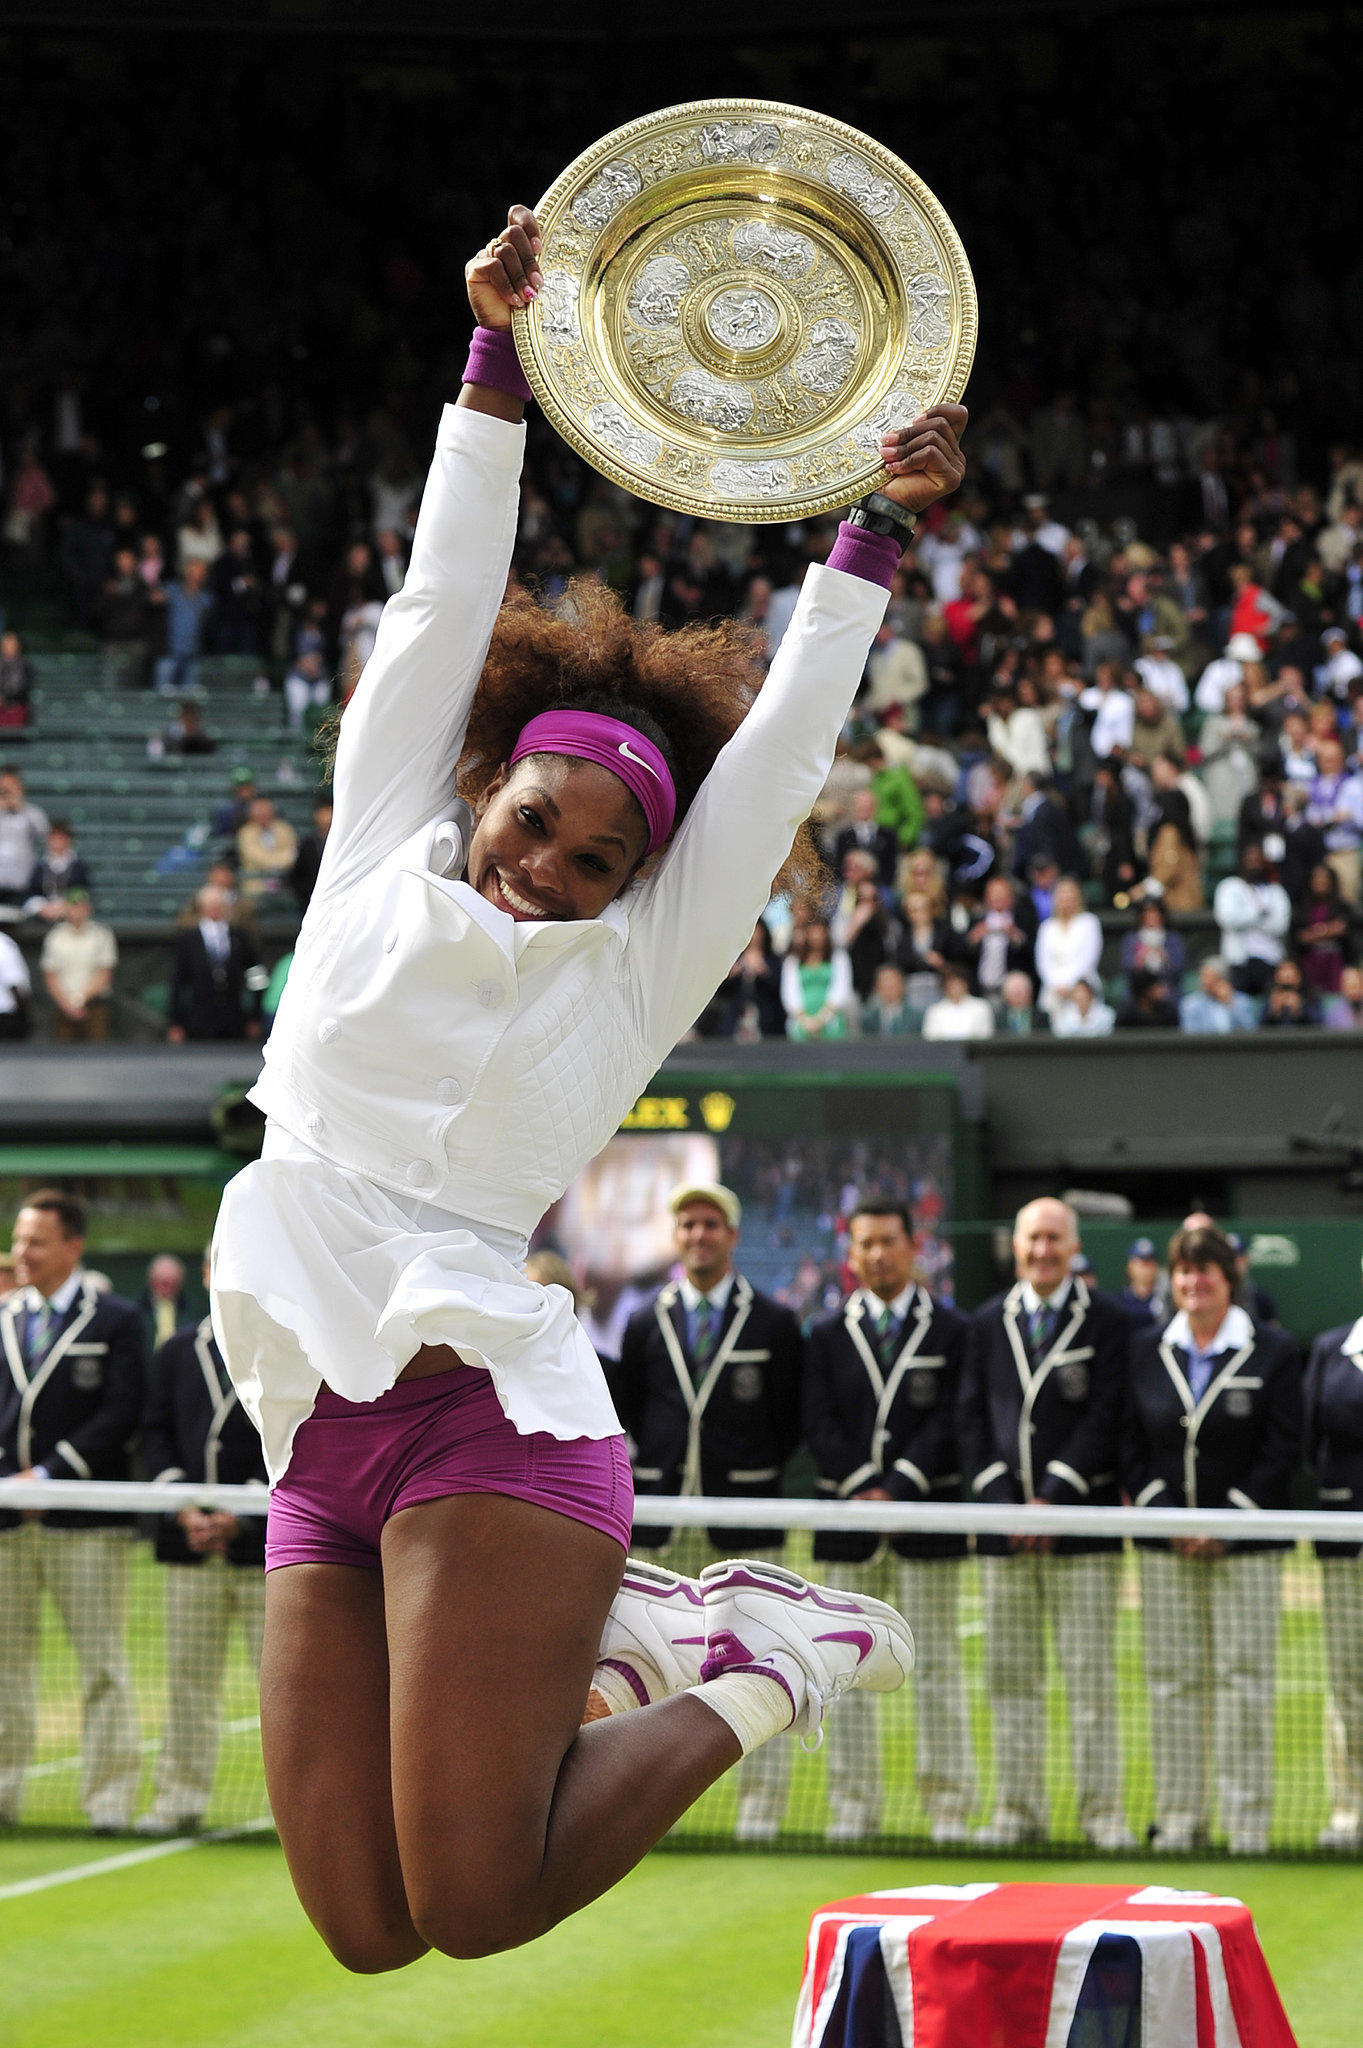 Serena Williams jumped for joy in a cute white and purple tennis ensemble as she celebrated her women's singles final victory at the 2012 Wimbledon championship tournament.